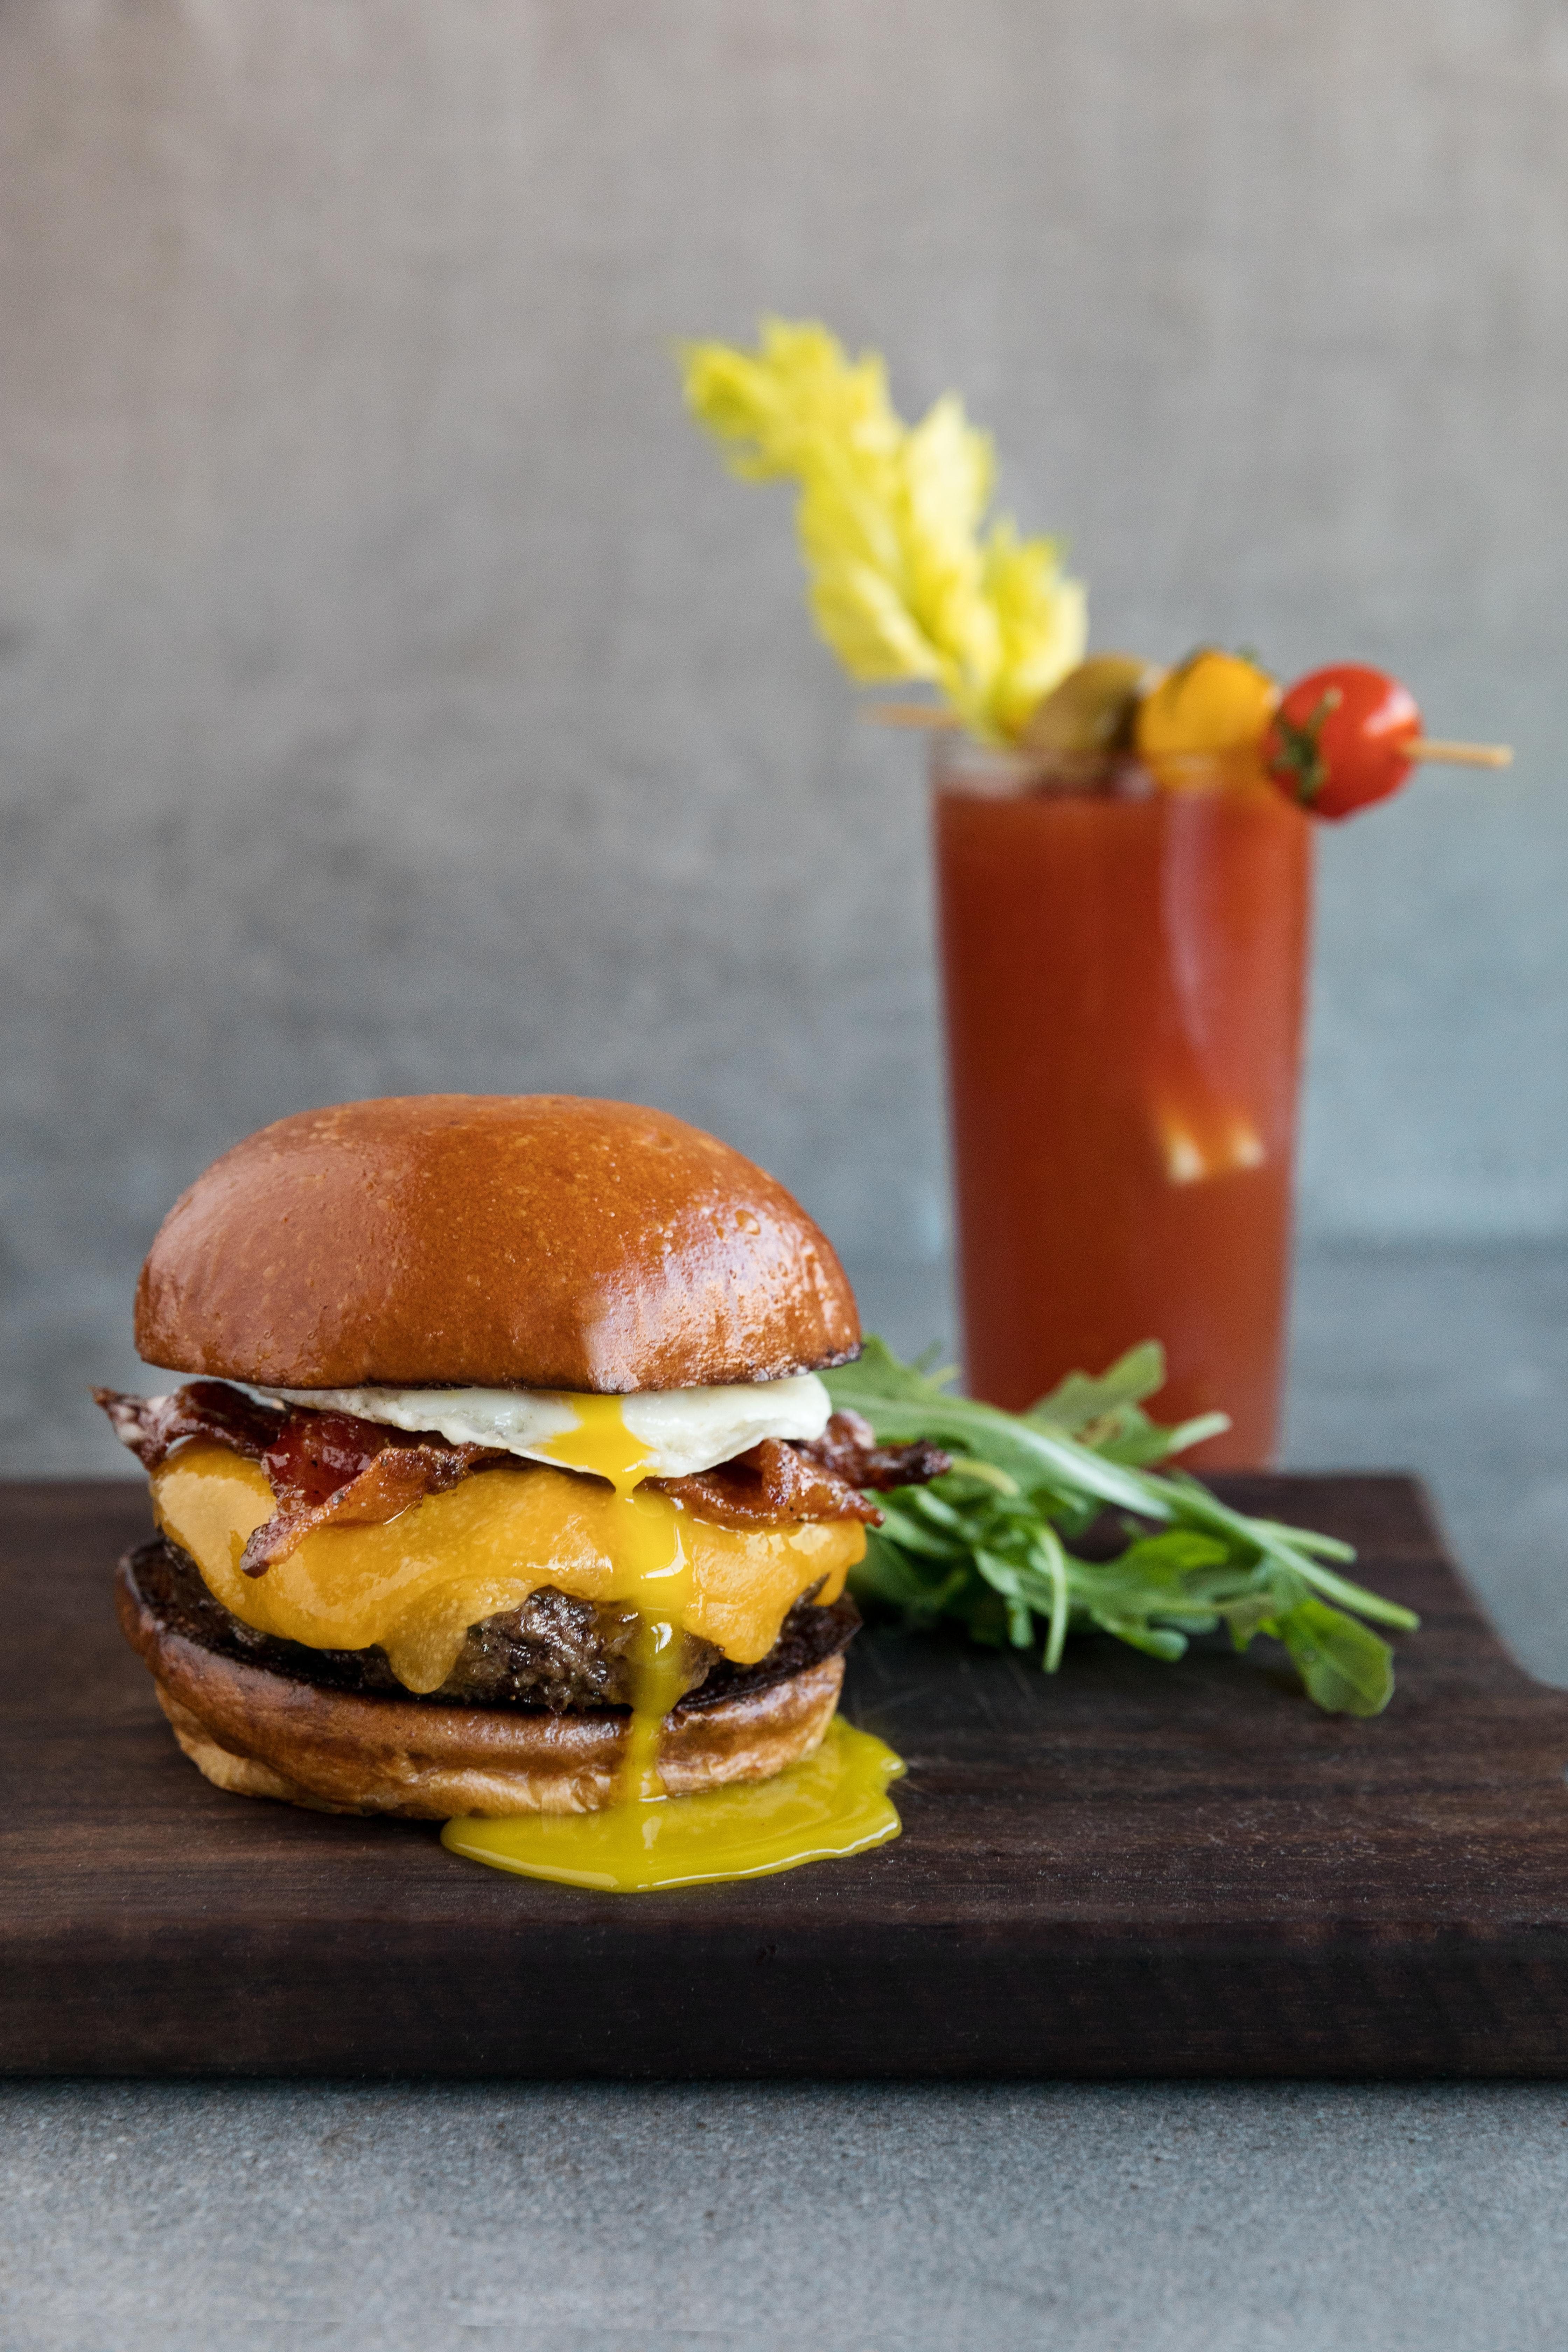 Head to North Bethesda's bustling Pike & Rose development for a brunch burger from City Perch ($19.99). The beef is topped with candied bacon, sharp cheddar, and a fried egg. (Image: Courtesy City Perch)